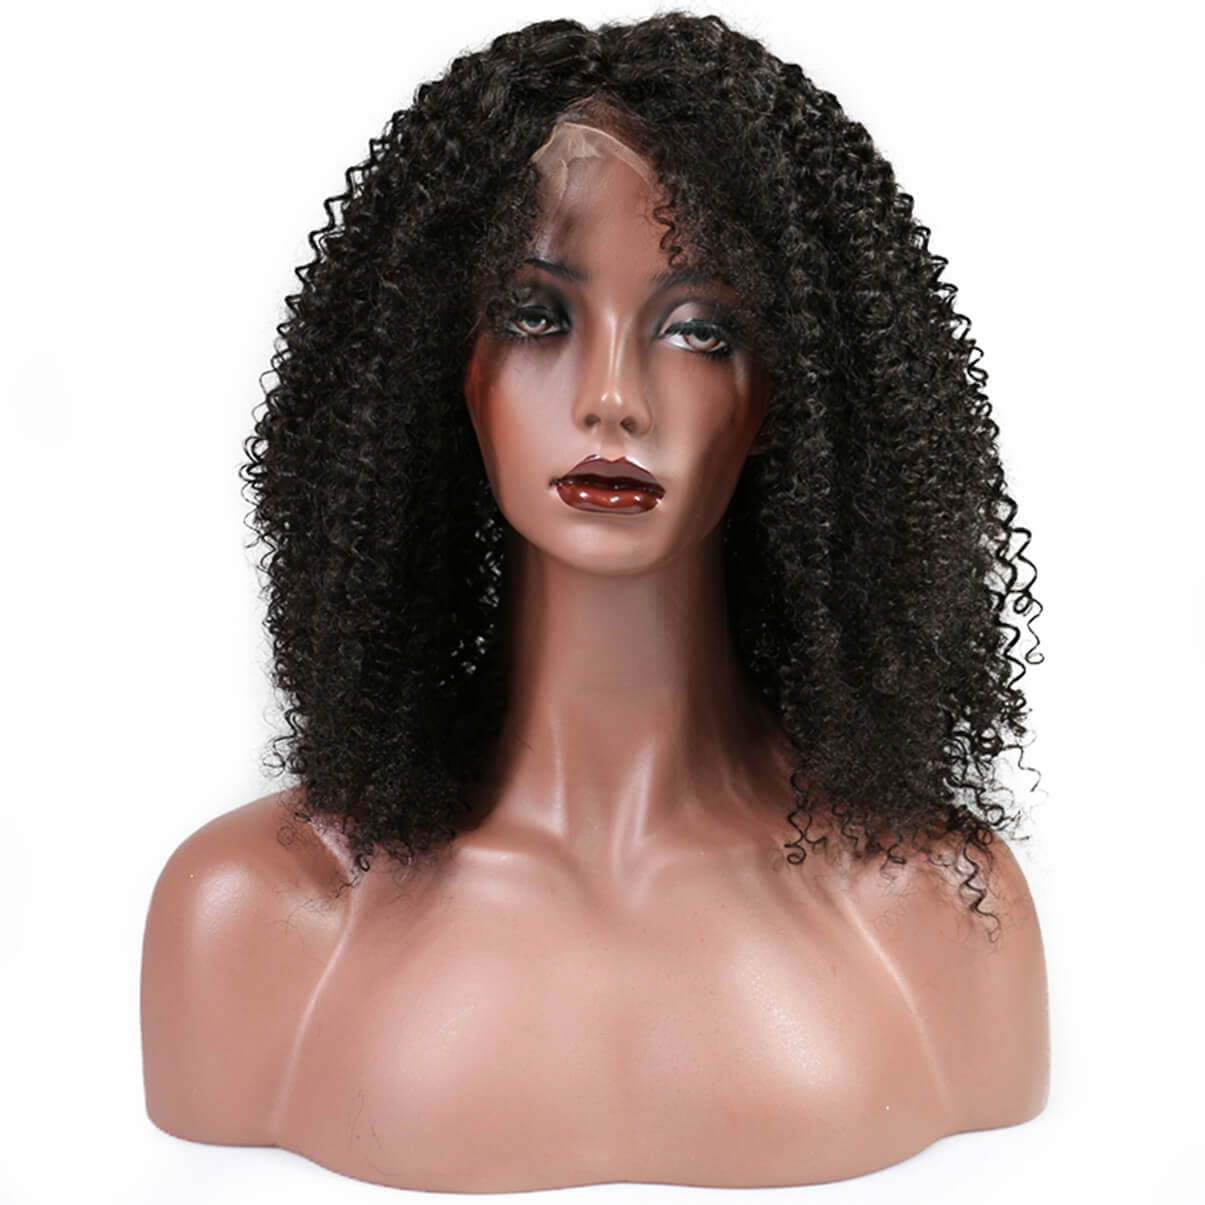 Lakihair Kinky Curly Lace Front Wigs Virgin Human Hair Lace Wigs With Baby Hair